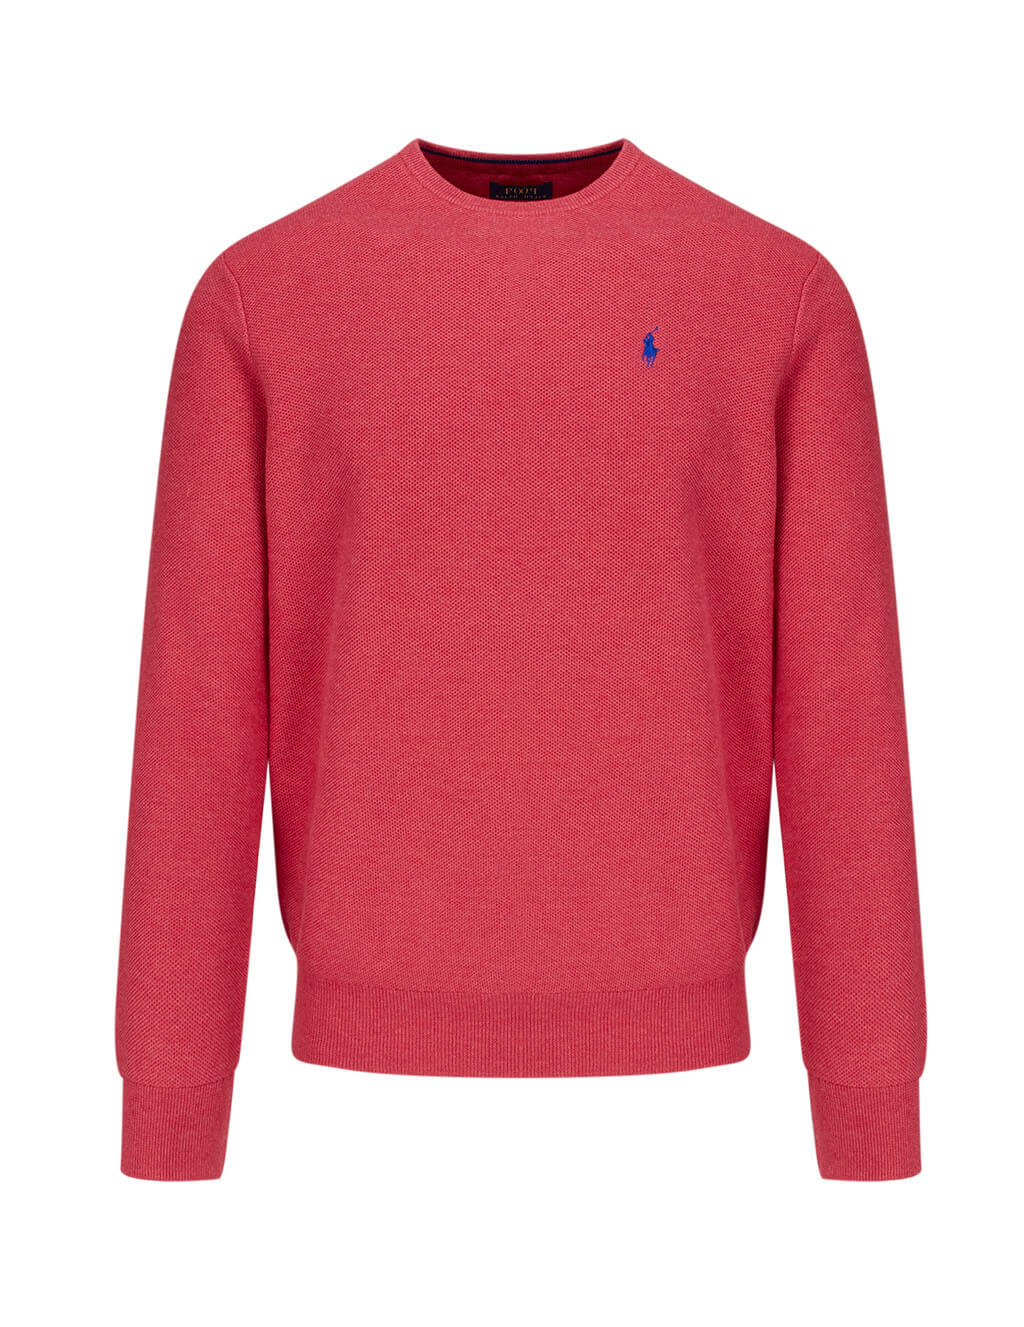 Polo Ralph Lauren Men's Rosette Heather Cotton Pima Knit 710680593033